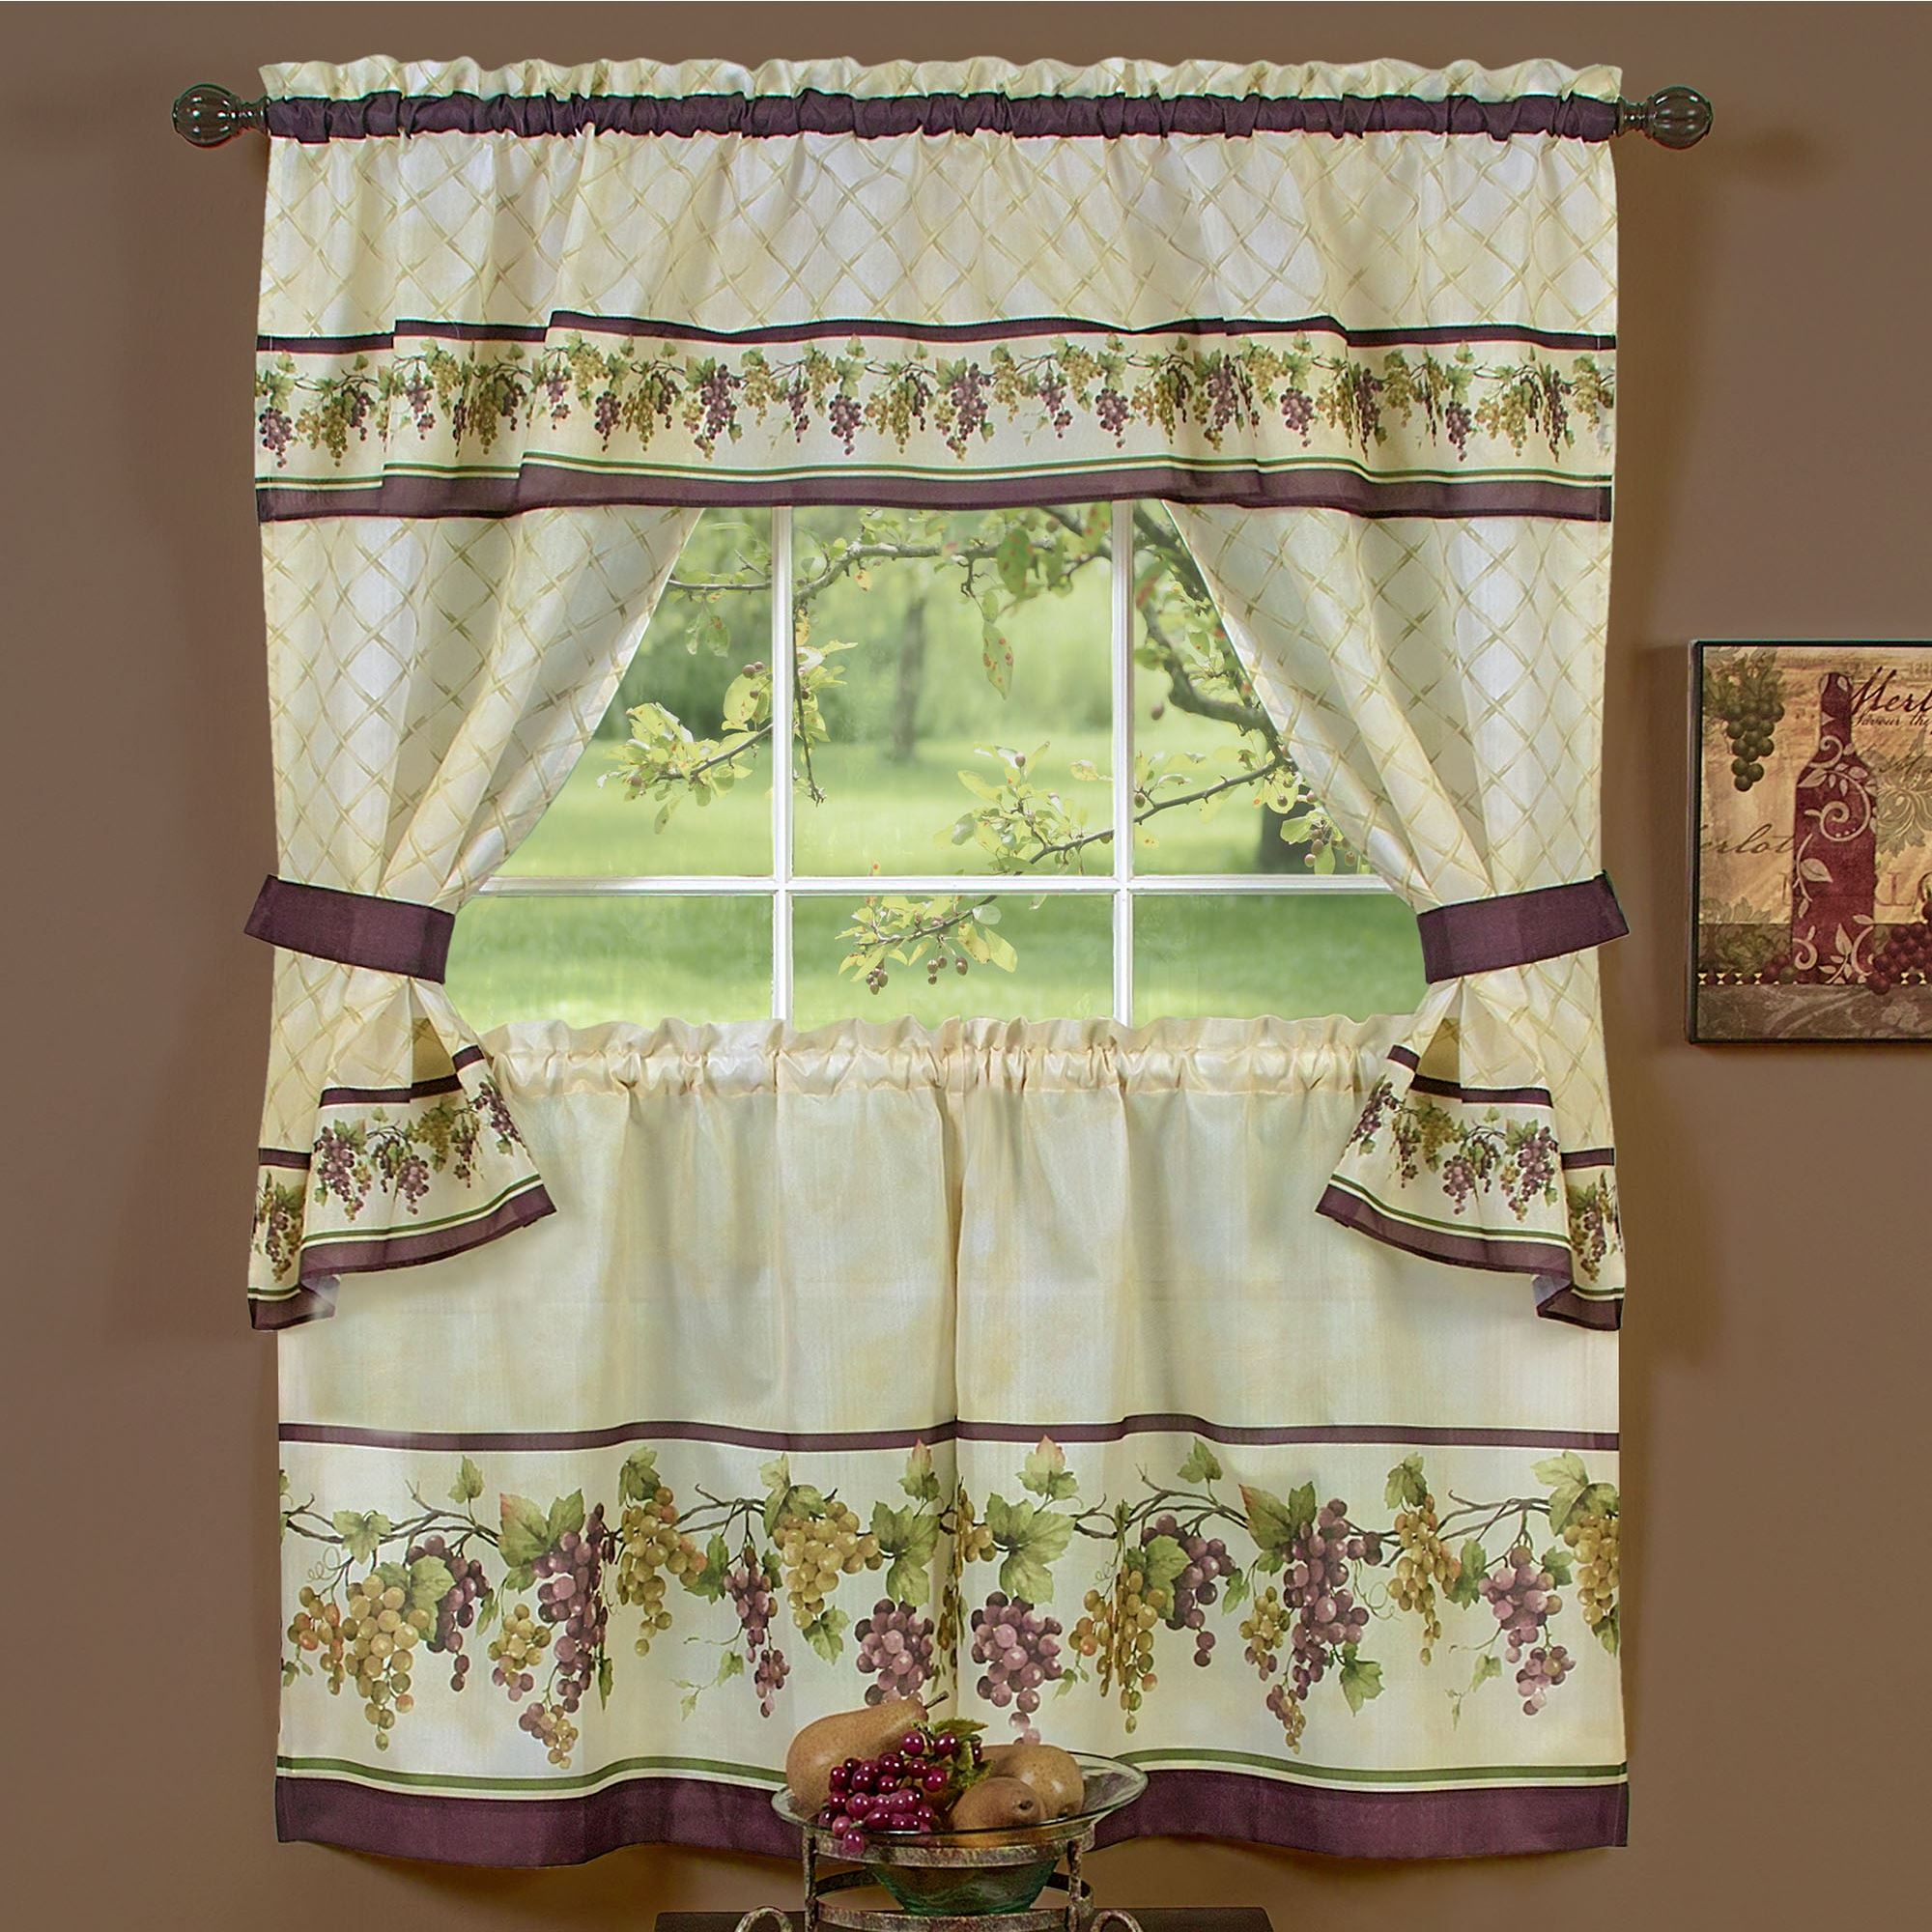 Tuscany grape kitchen window tier and valance set for Grapes furniture and home decor